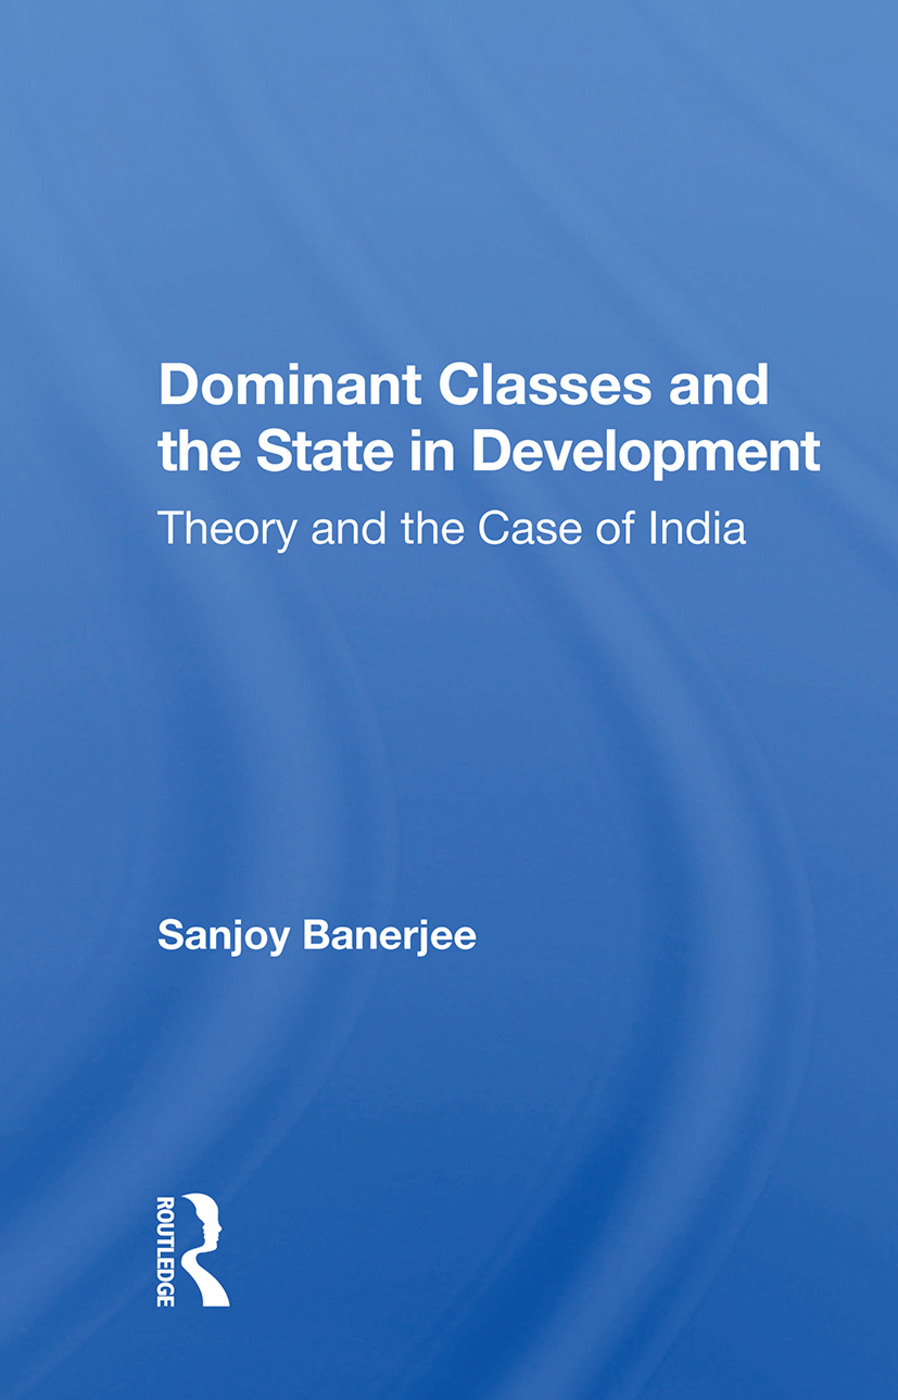 Dominant Classes and the State in Development